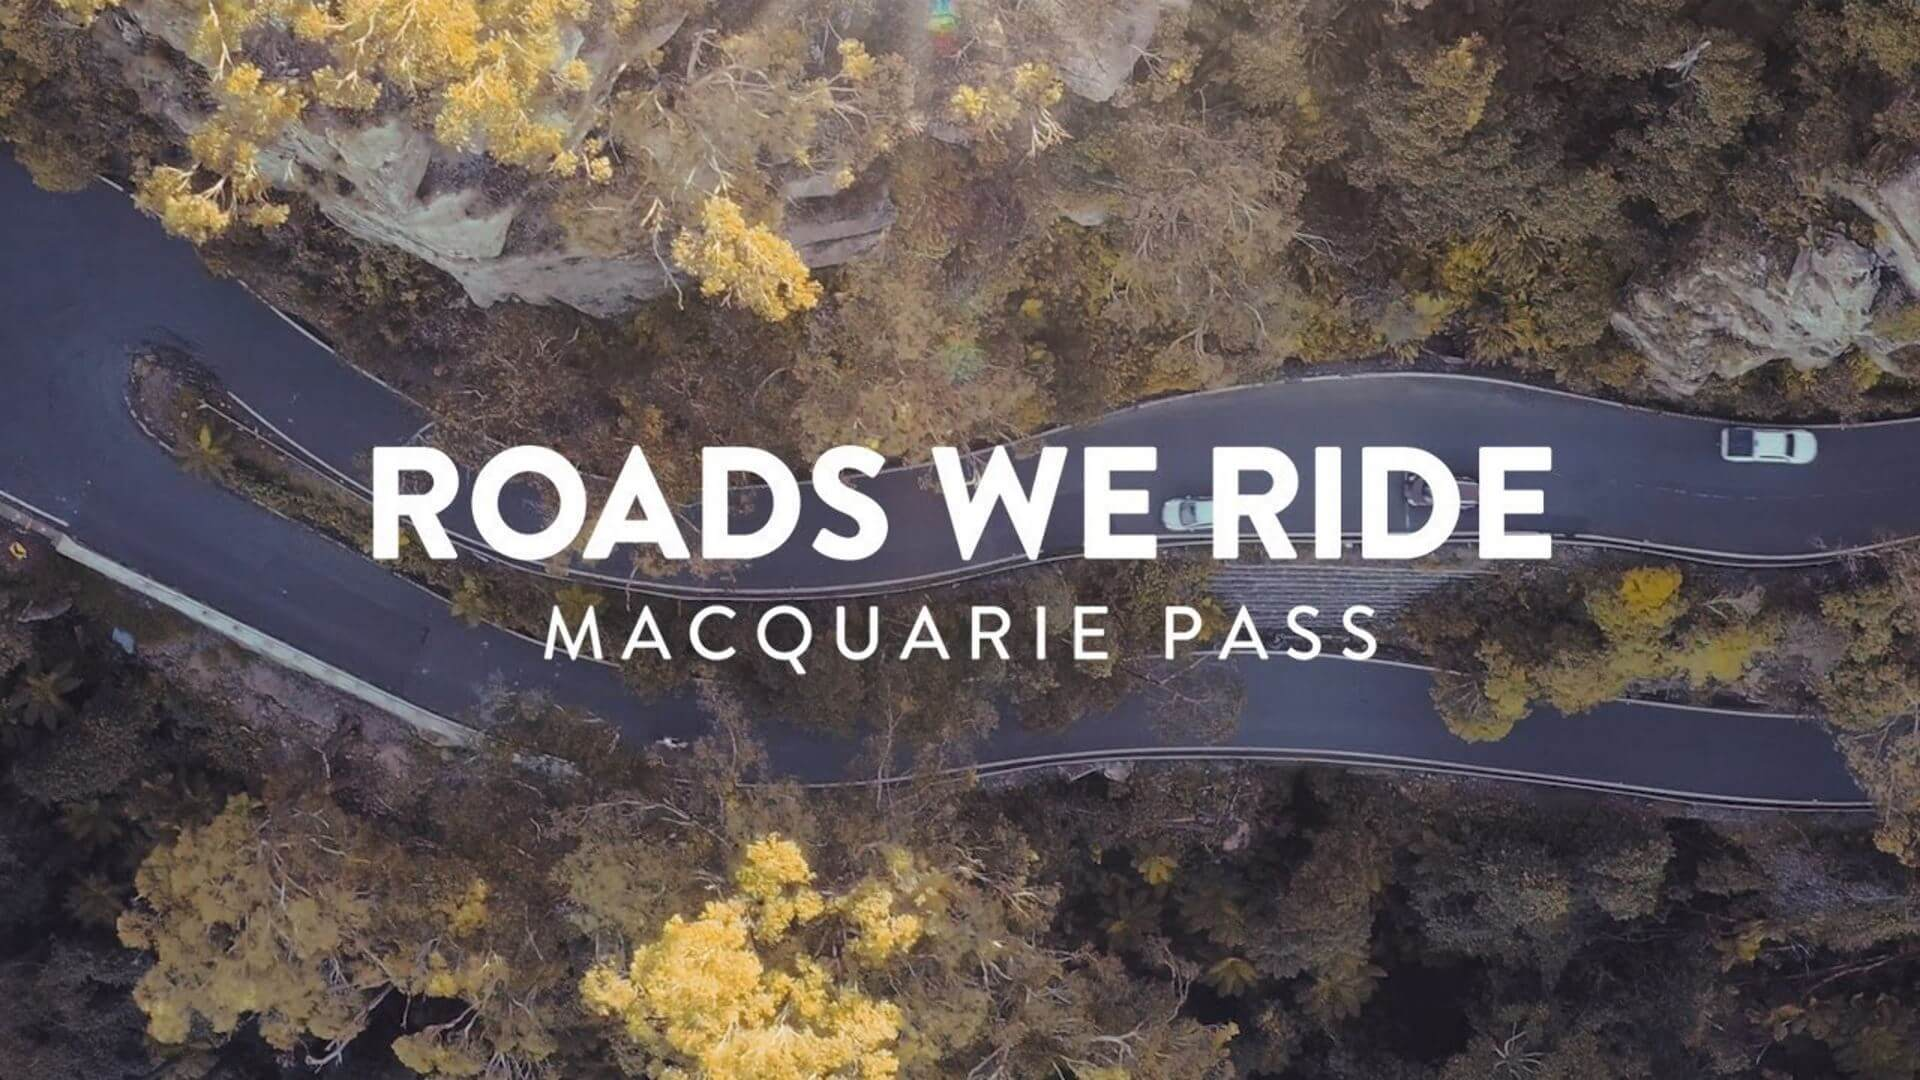 Roads We Ride Macquarie Pass